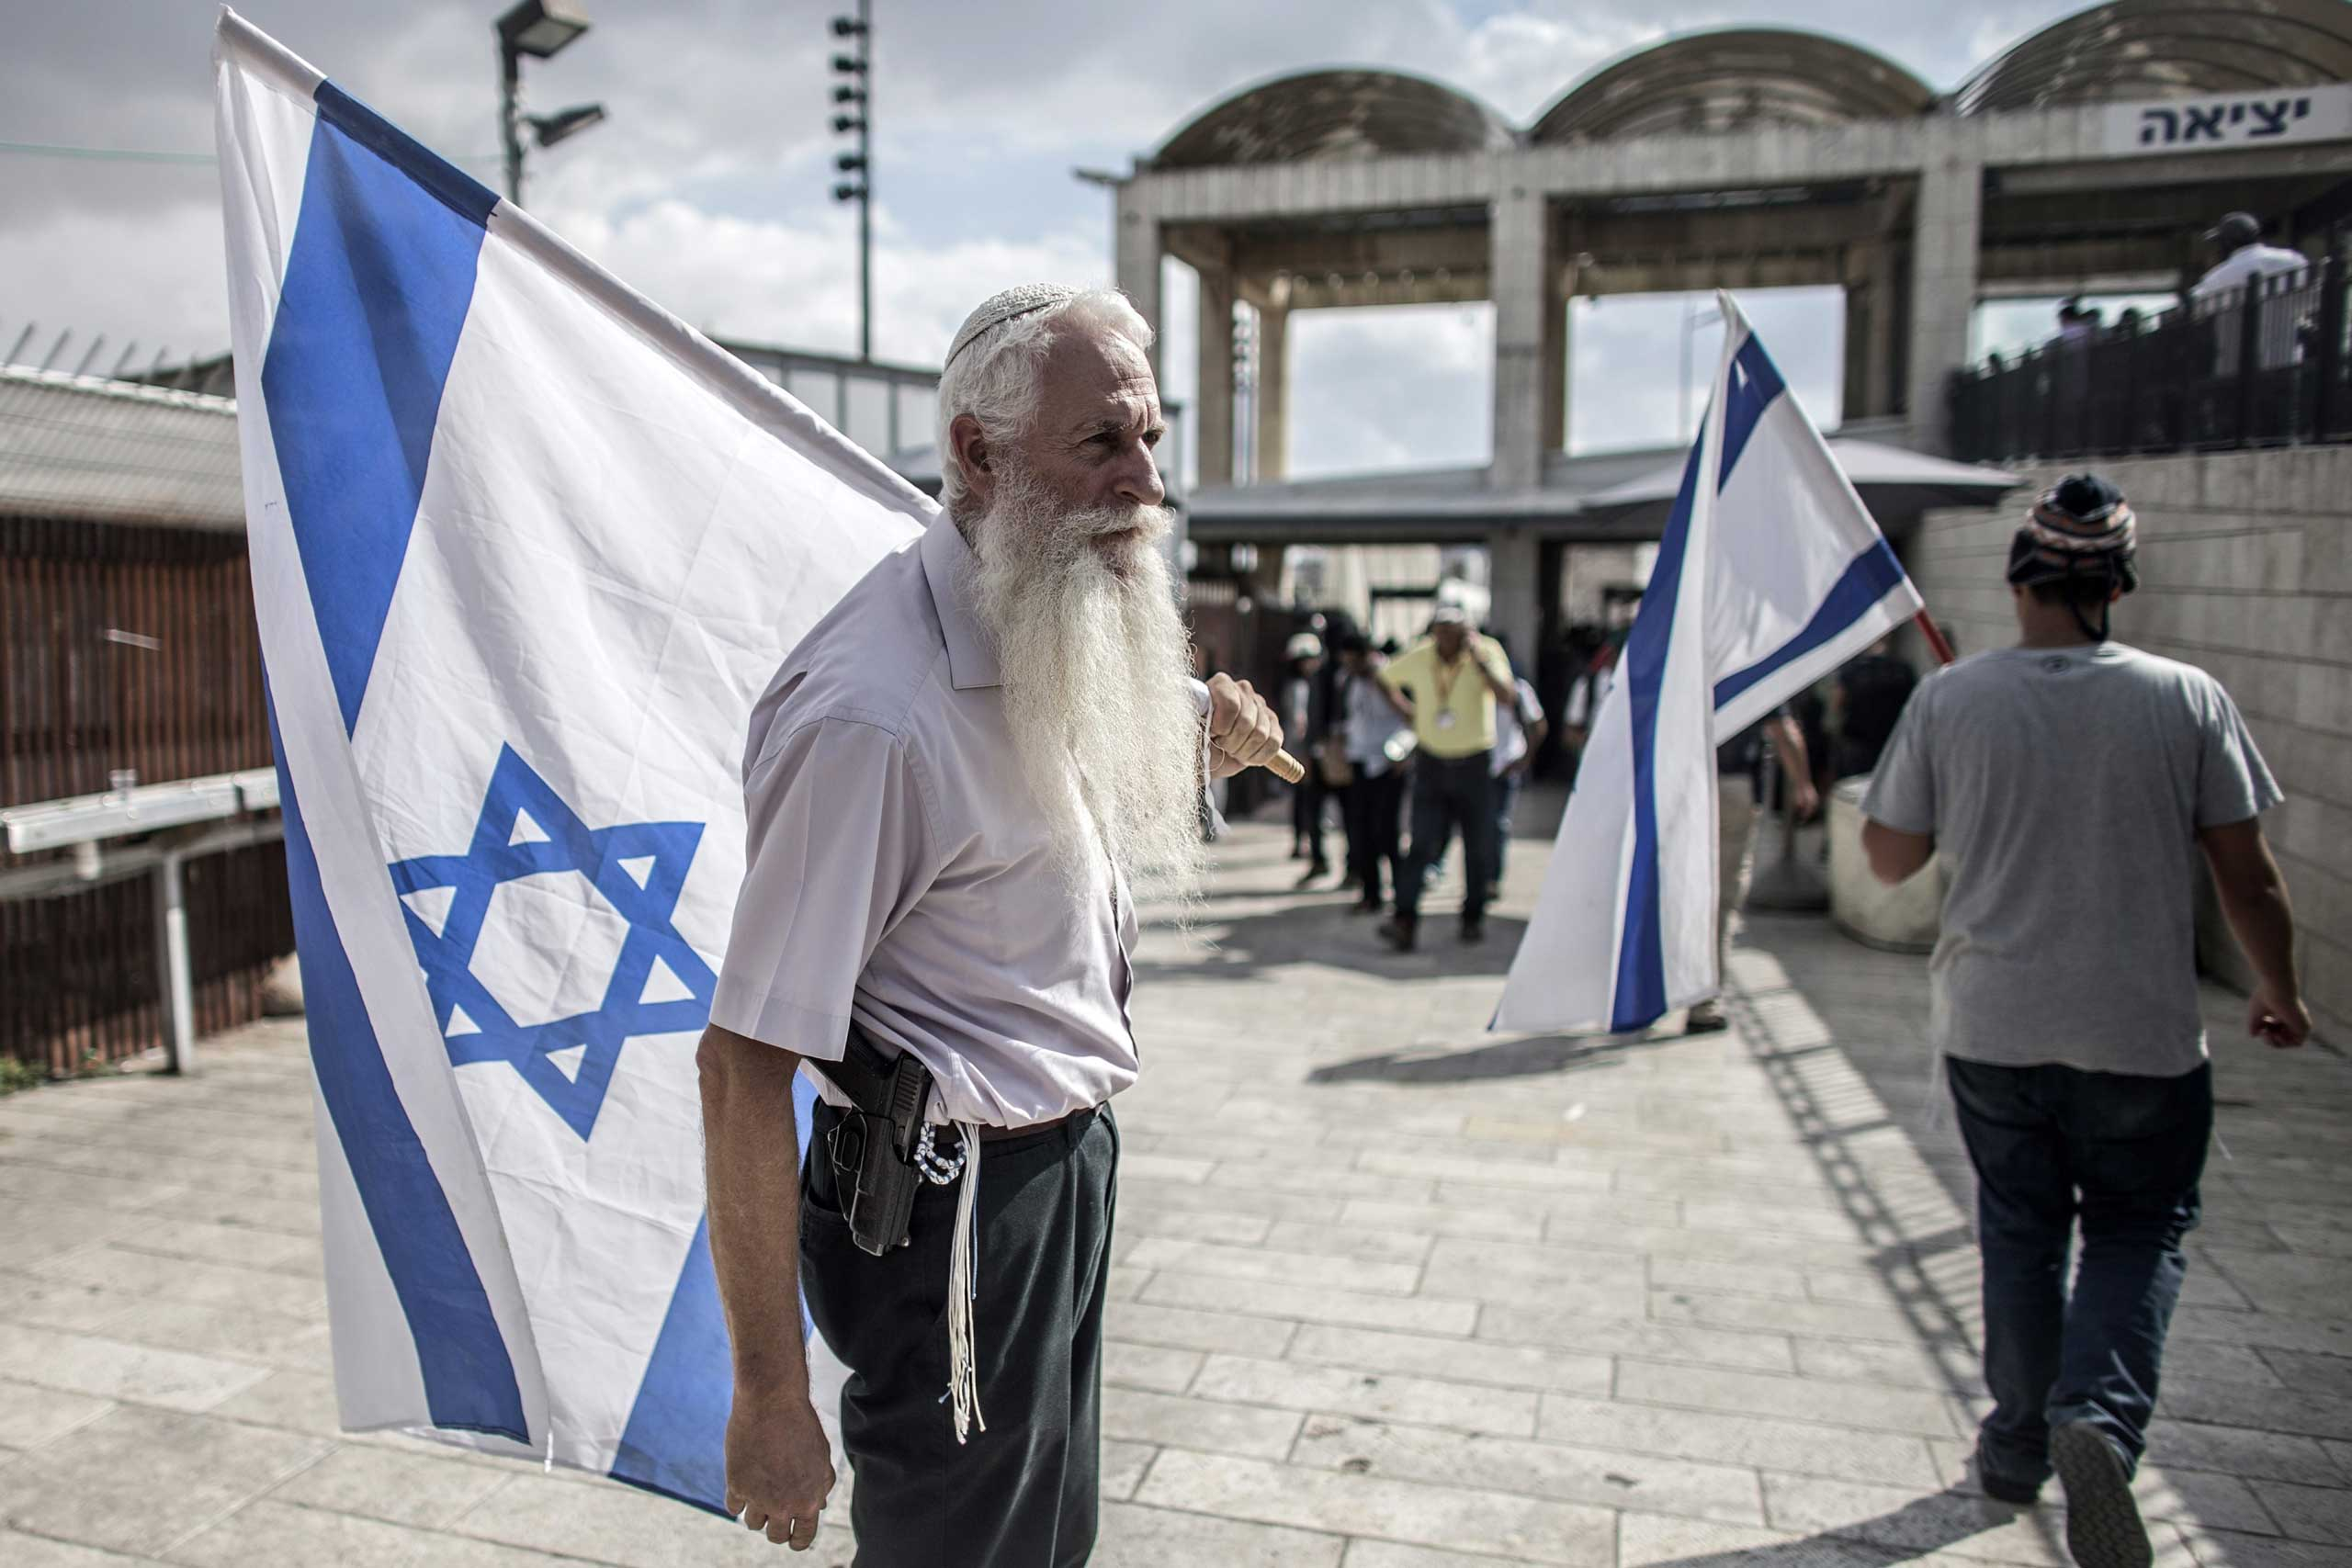 Oct. 30, 2014. An armed Israeli right wing activists stand at the entrance to the Western Wall and the Al-Aqsa compound, the third most holiest site in Islam, in Jerusalem's Old City. Israeli authorities close the compound for the first time since the second Intifada following an assassination attempt of the Israeli right-wing activist Rabbi Yehuda Glick.